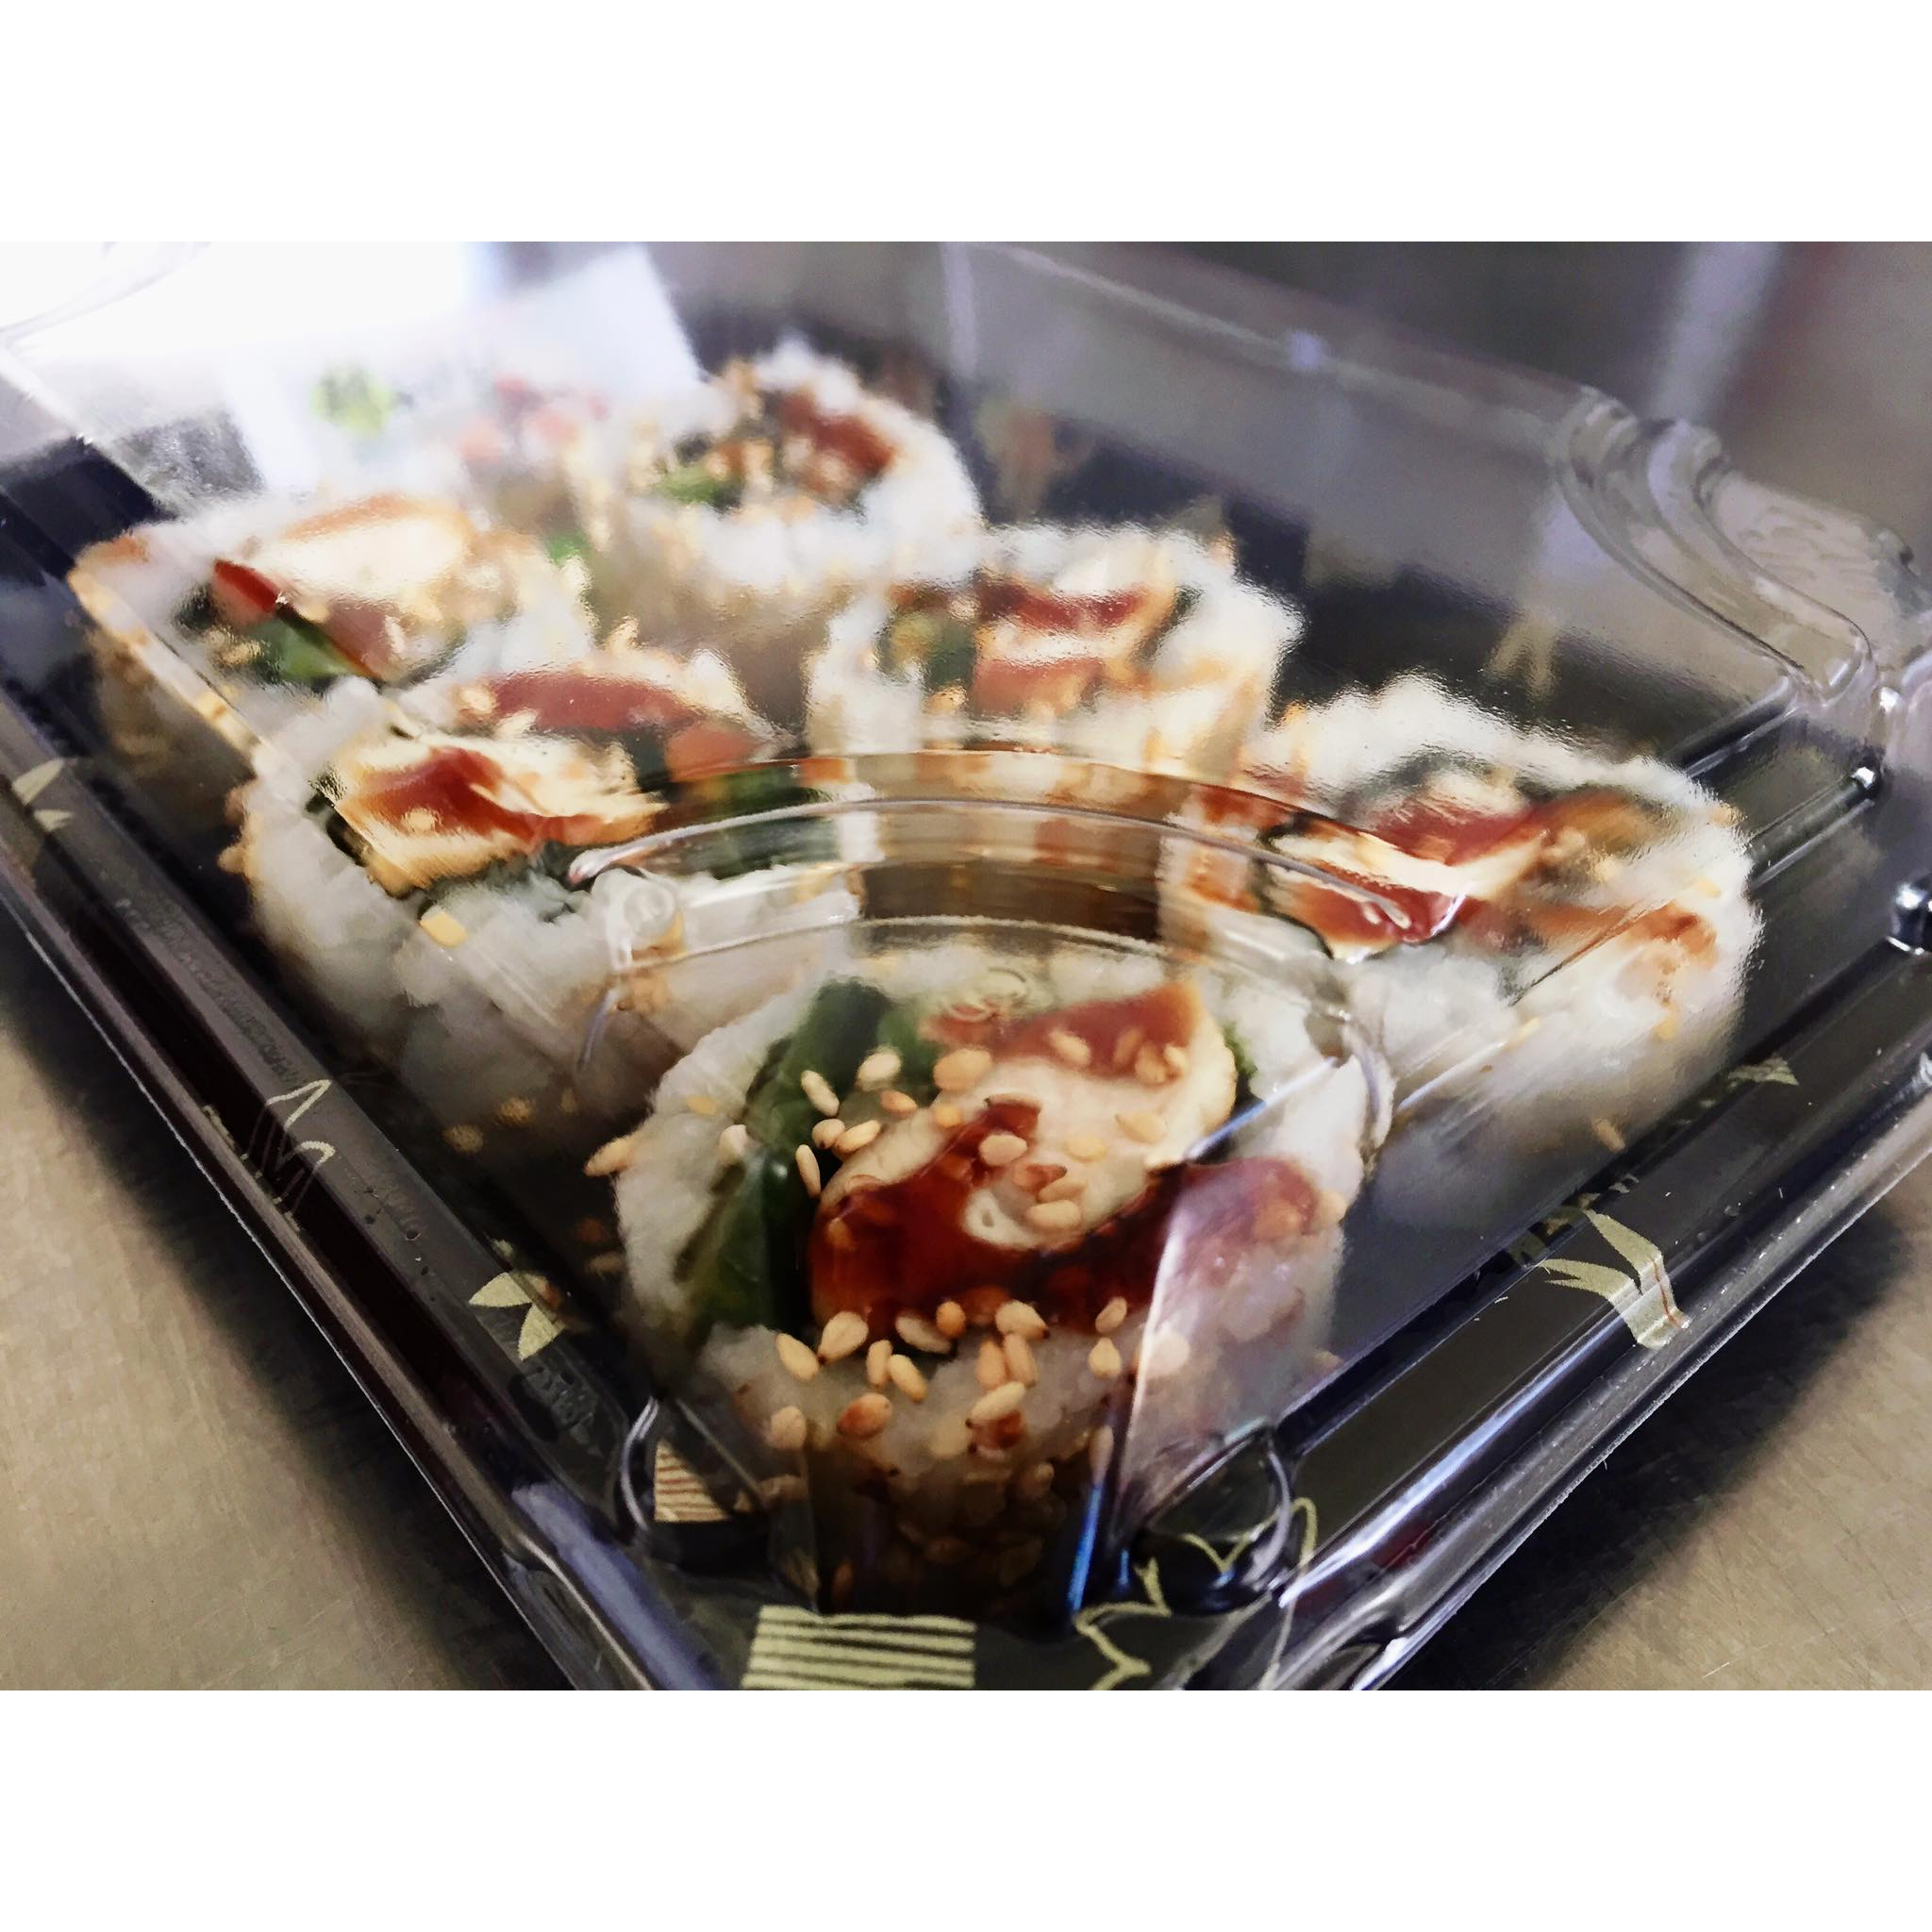 TERIYAKI CHICKEN SUSHI ROLL - £5.50   6 x teriyaki chicken sushi rolls.  *contains gluten